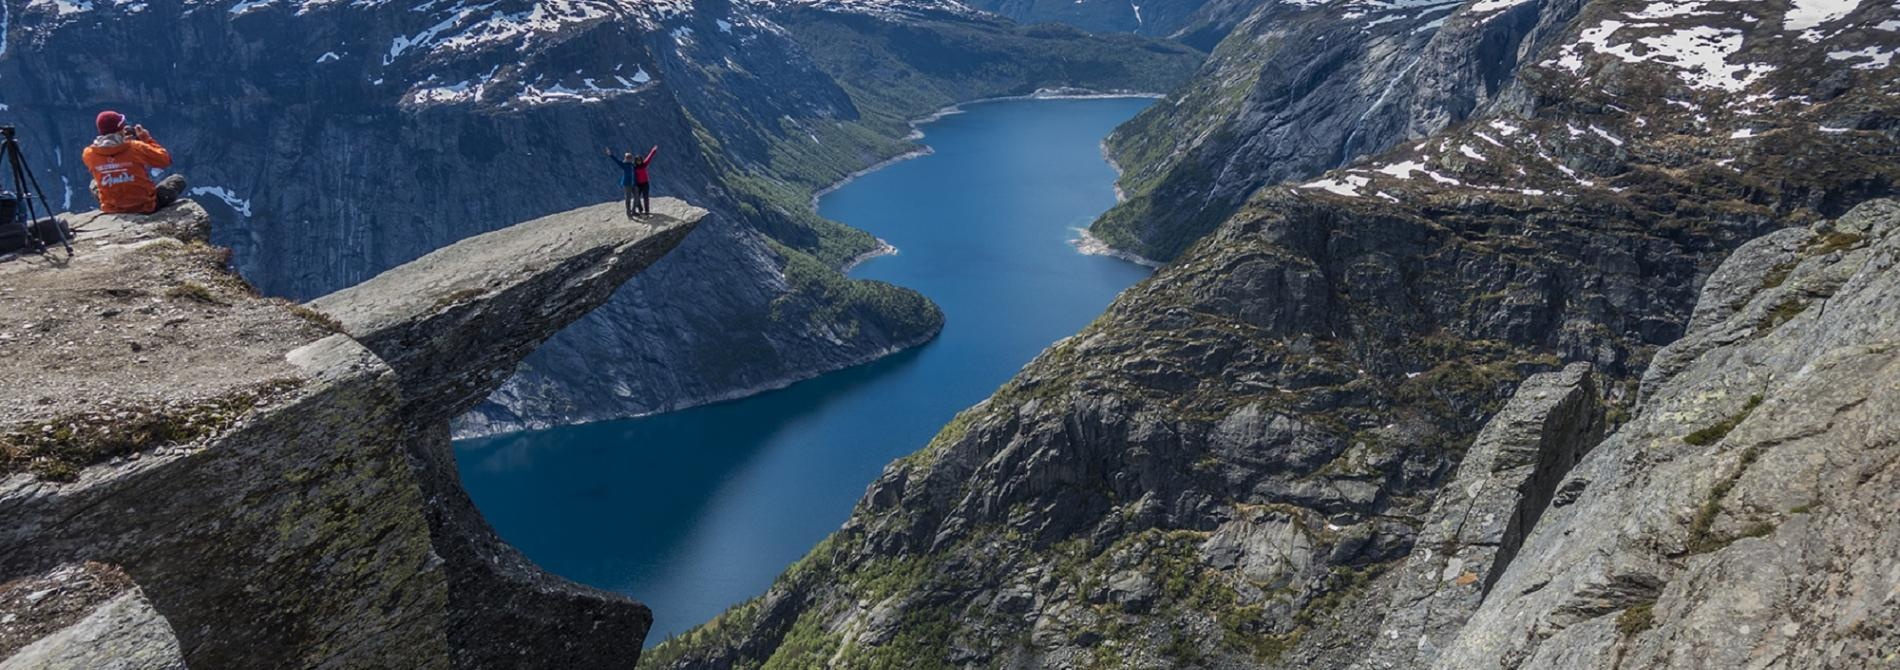 Trolltunga with Guide